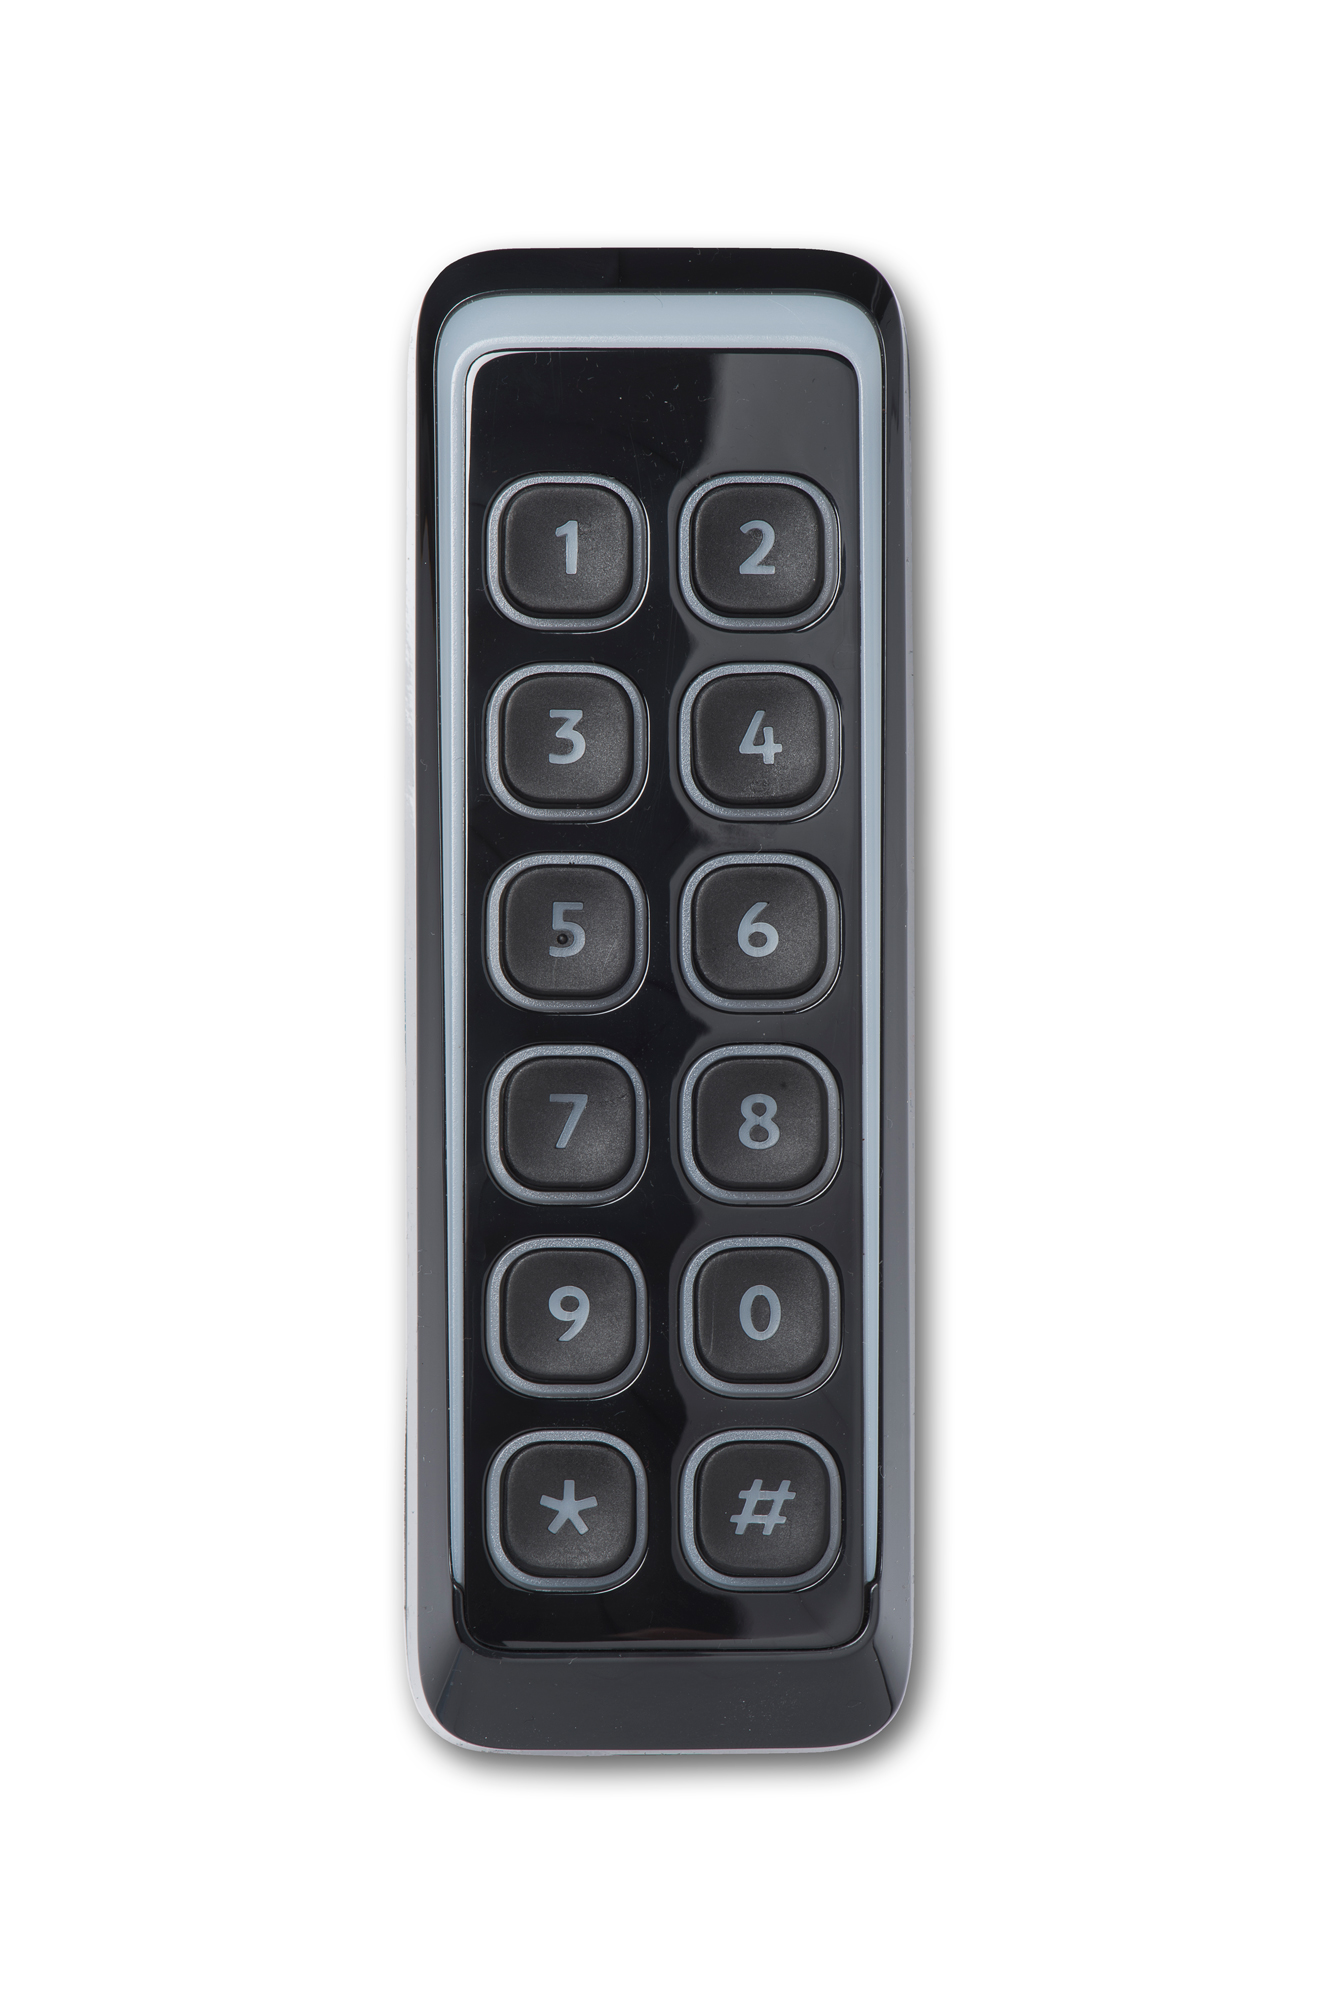 sc9200-md-mp-s-cidron-slimline-with-keypad-glossy-black-h2000px